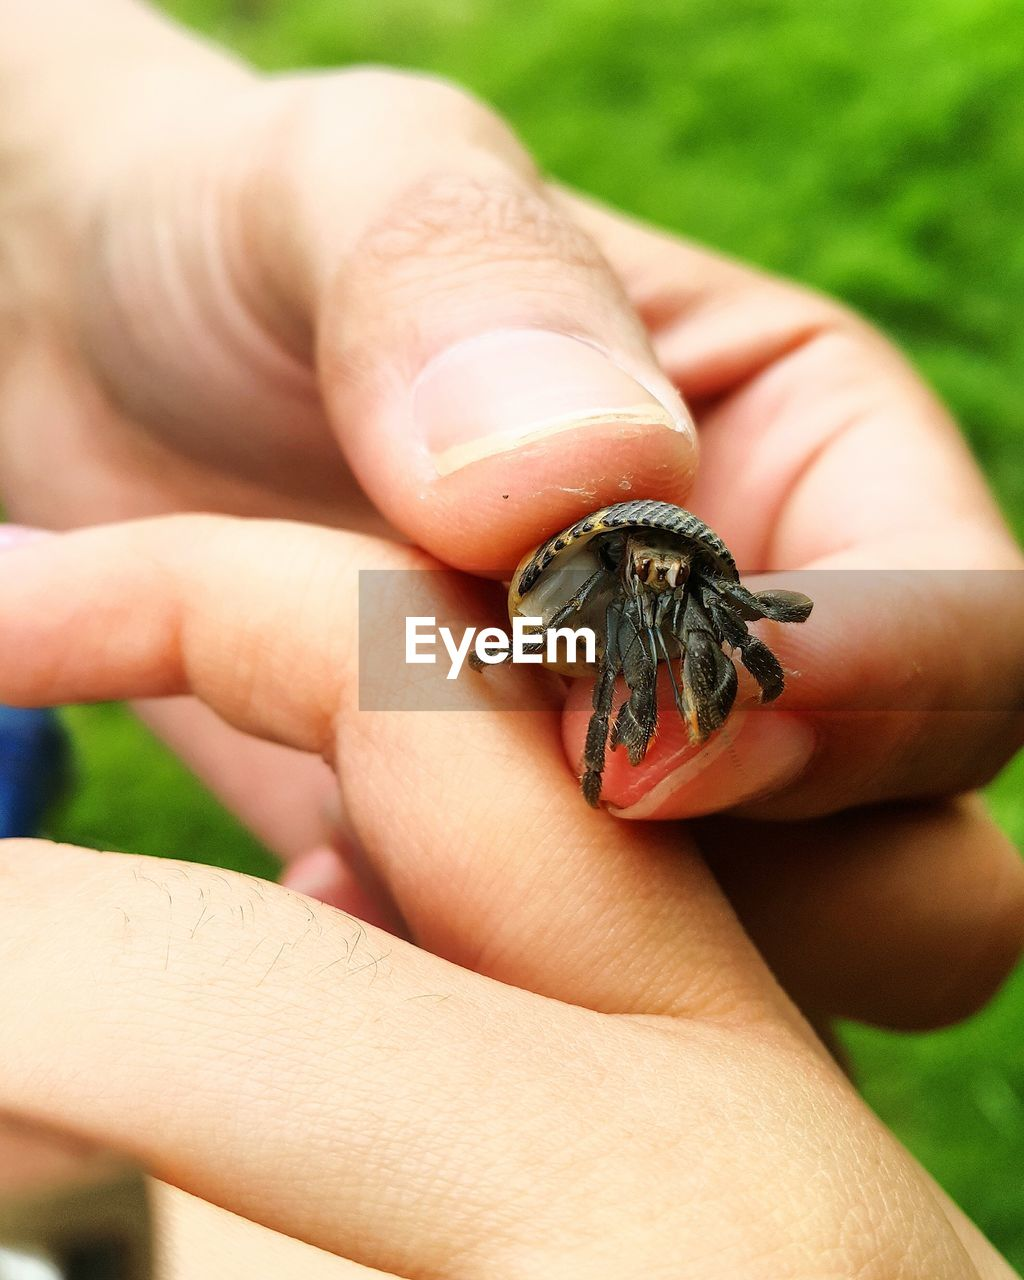 human hand, hand, human body part, one animal, animals in the wild, animal wildlife, holding, body part, finger, real people, one person, human finger, focus on foreground, close-up, unrecognizable person, day, invertebrate, outdoors, amphibian, small, human limb, care